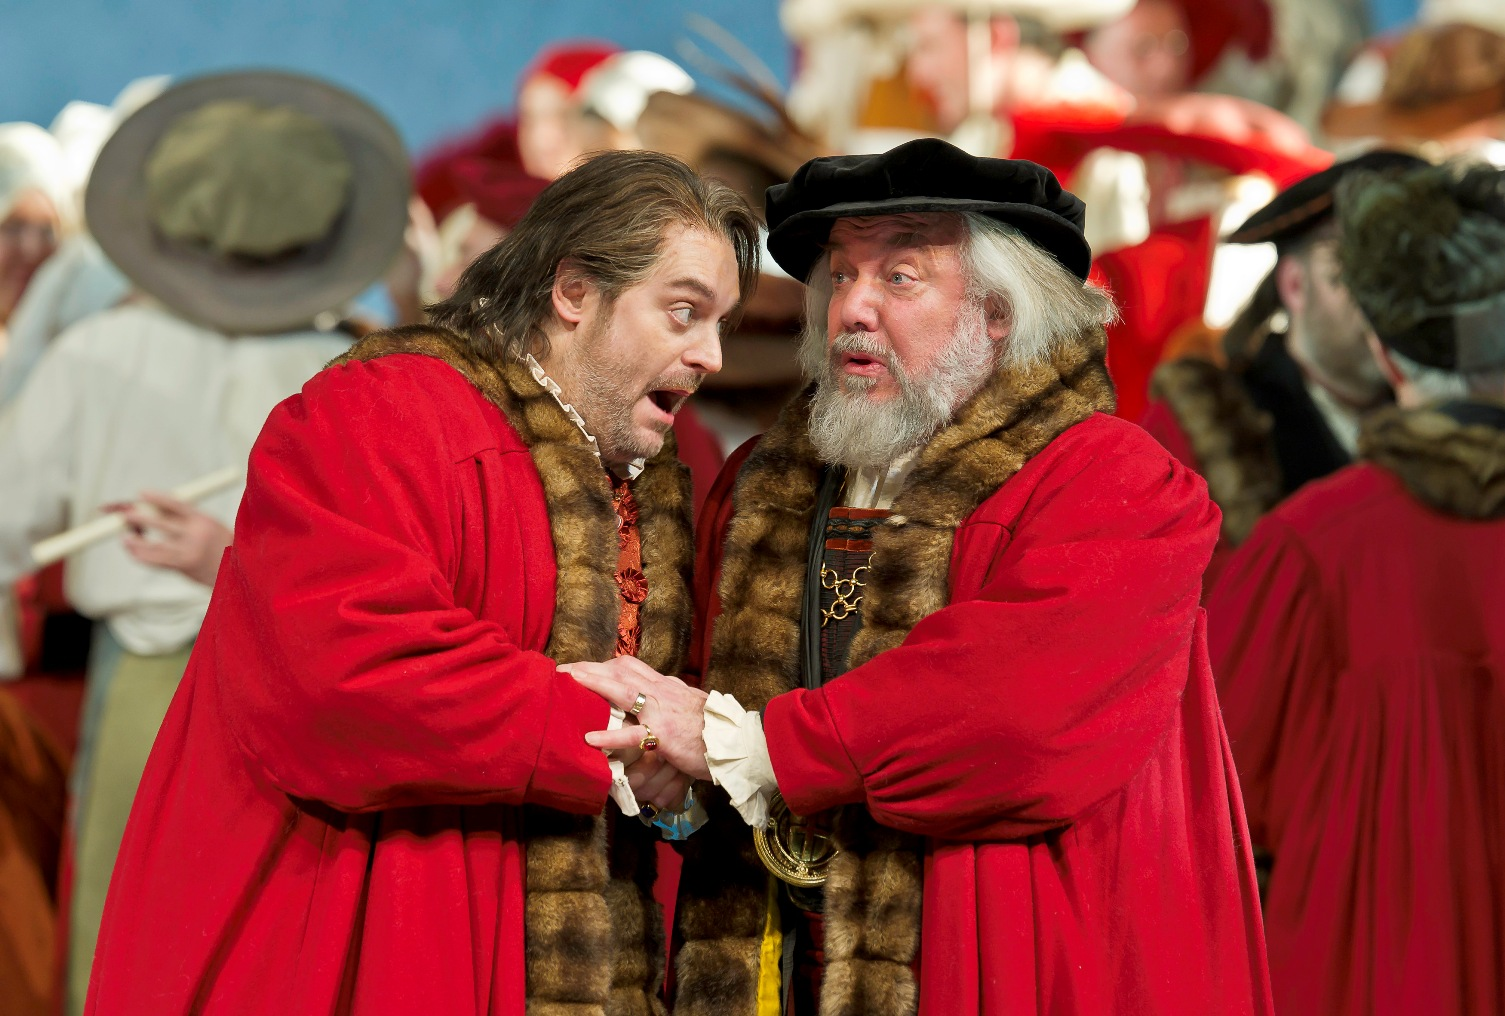 Wolfgang Koch's Sachs greets John Tomlinson's Pogner in Act III of the Royal Opera Meistersinger